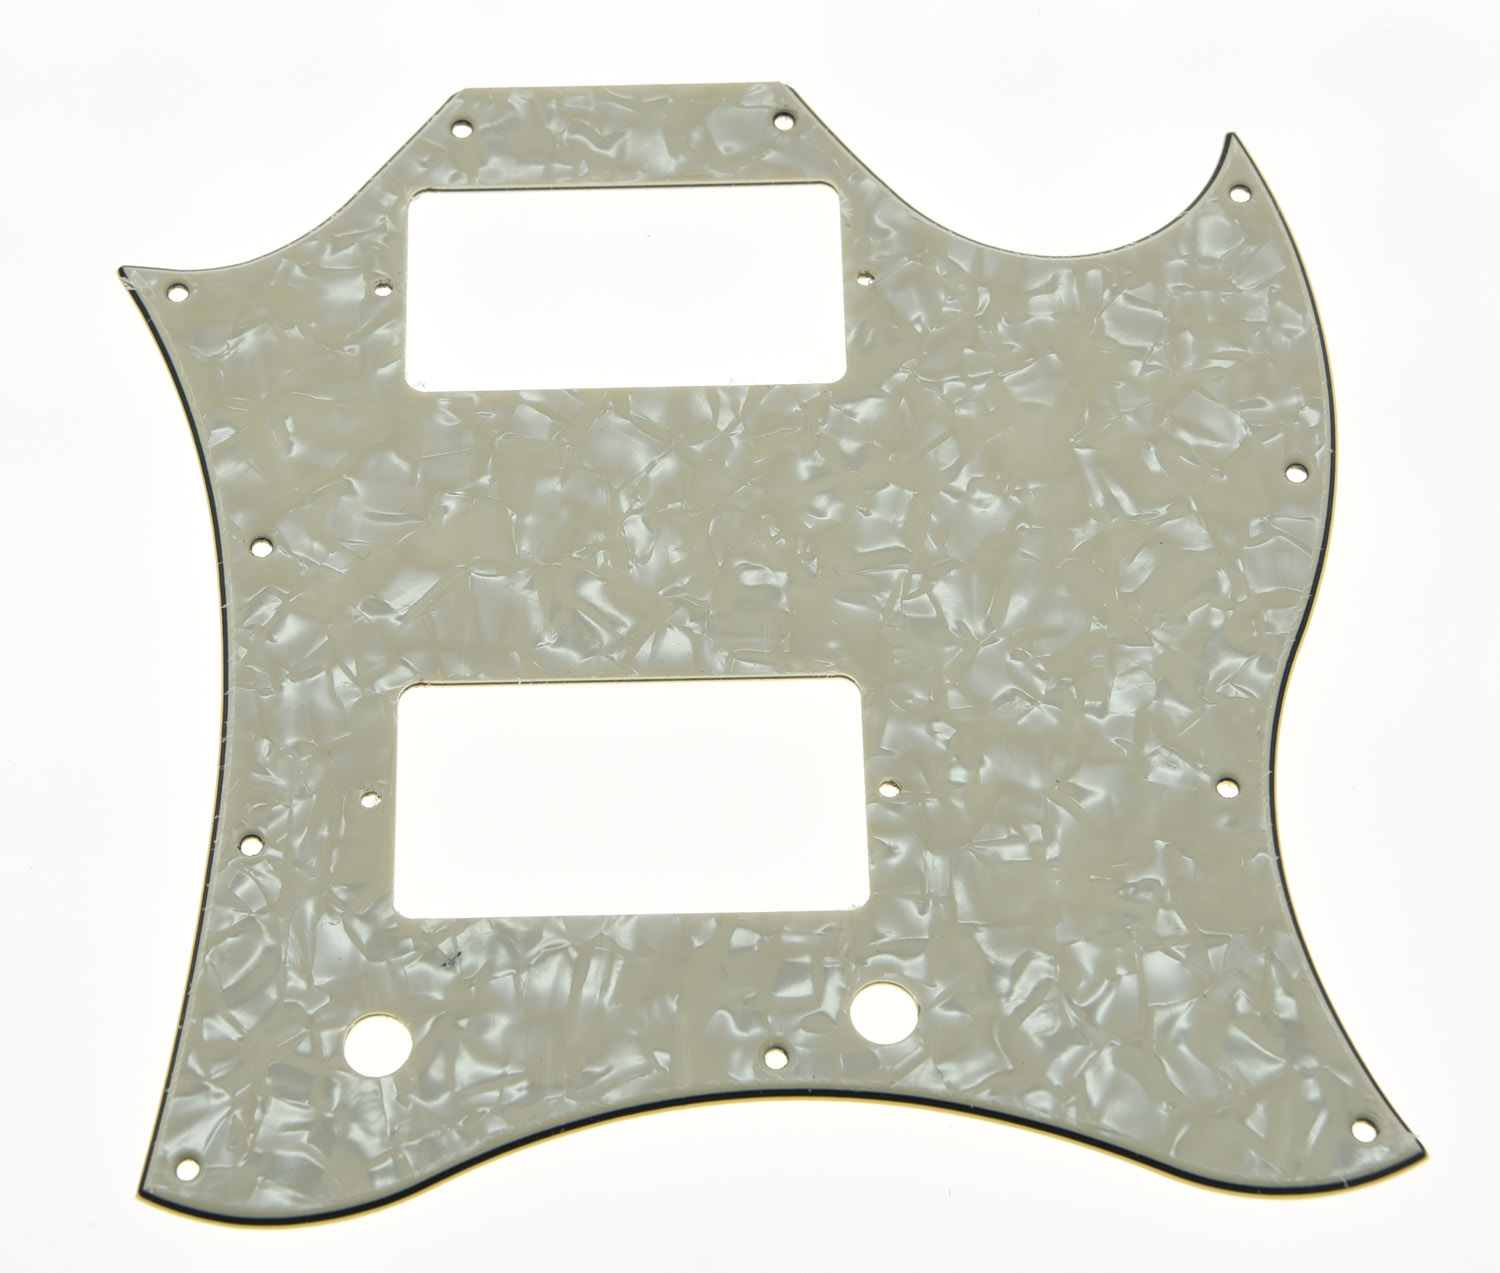 KAISH SG Standard Full Face Guitar Pickguard Scratch Plate Aged Pearl 3 Ply w/ Screws kaish various colors st style hss guitar pickguard scratch plate trem cover screws